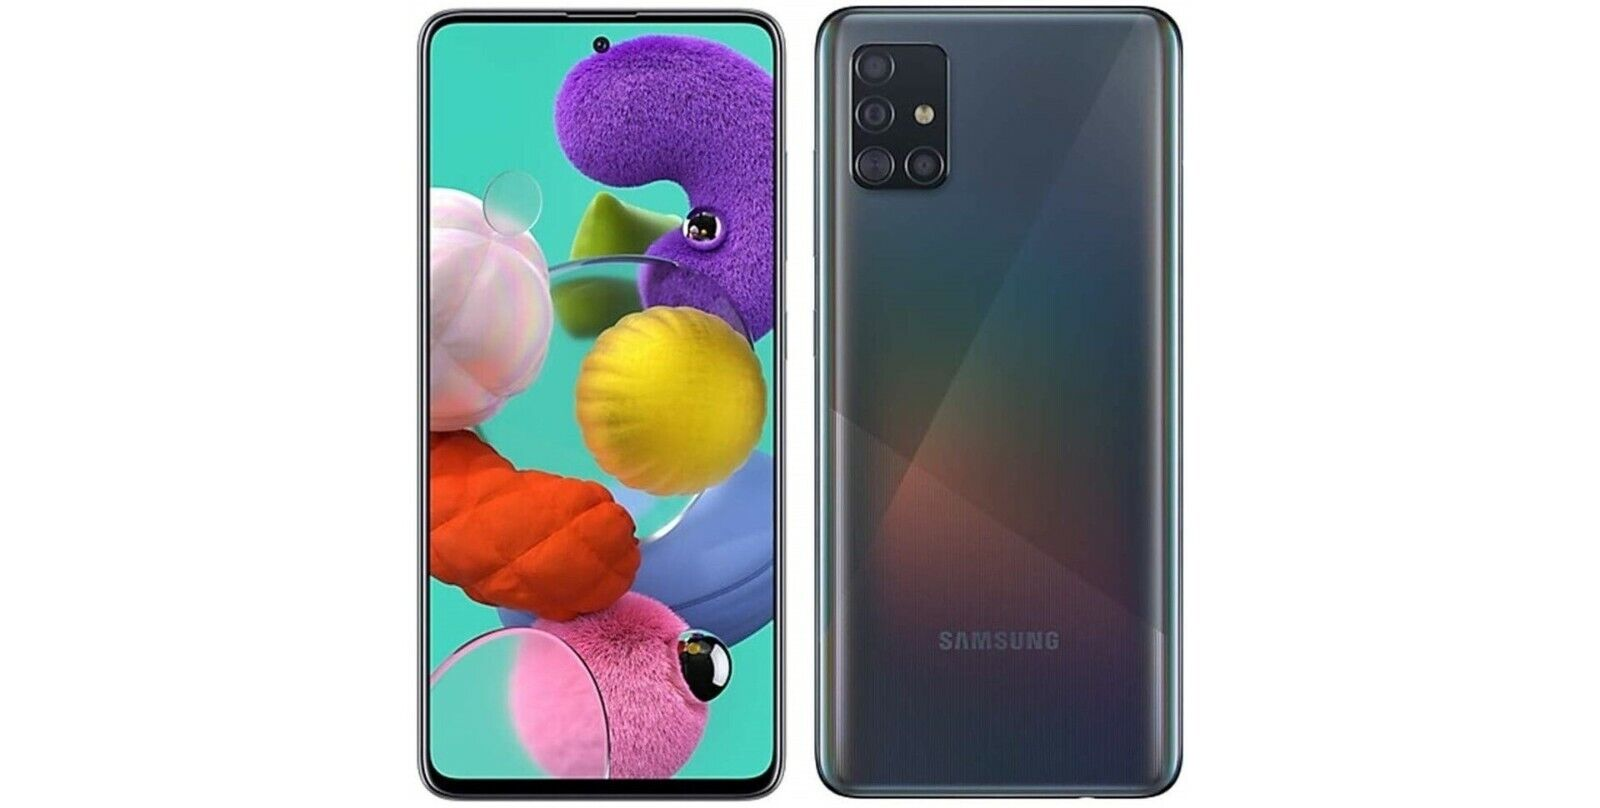 Android Phone - Samsung Galaxy A51 SM-A515U - 128GB Black (Sprint T-mobile AT&T Unlocked)  A